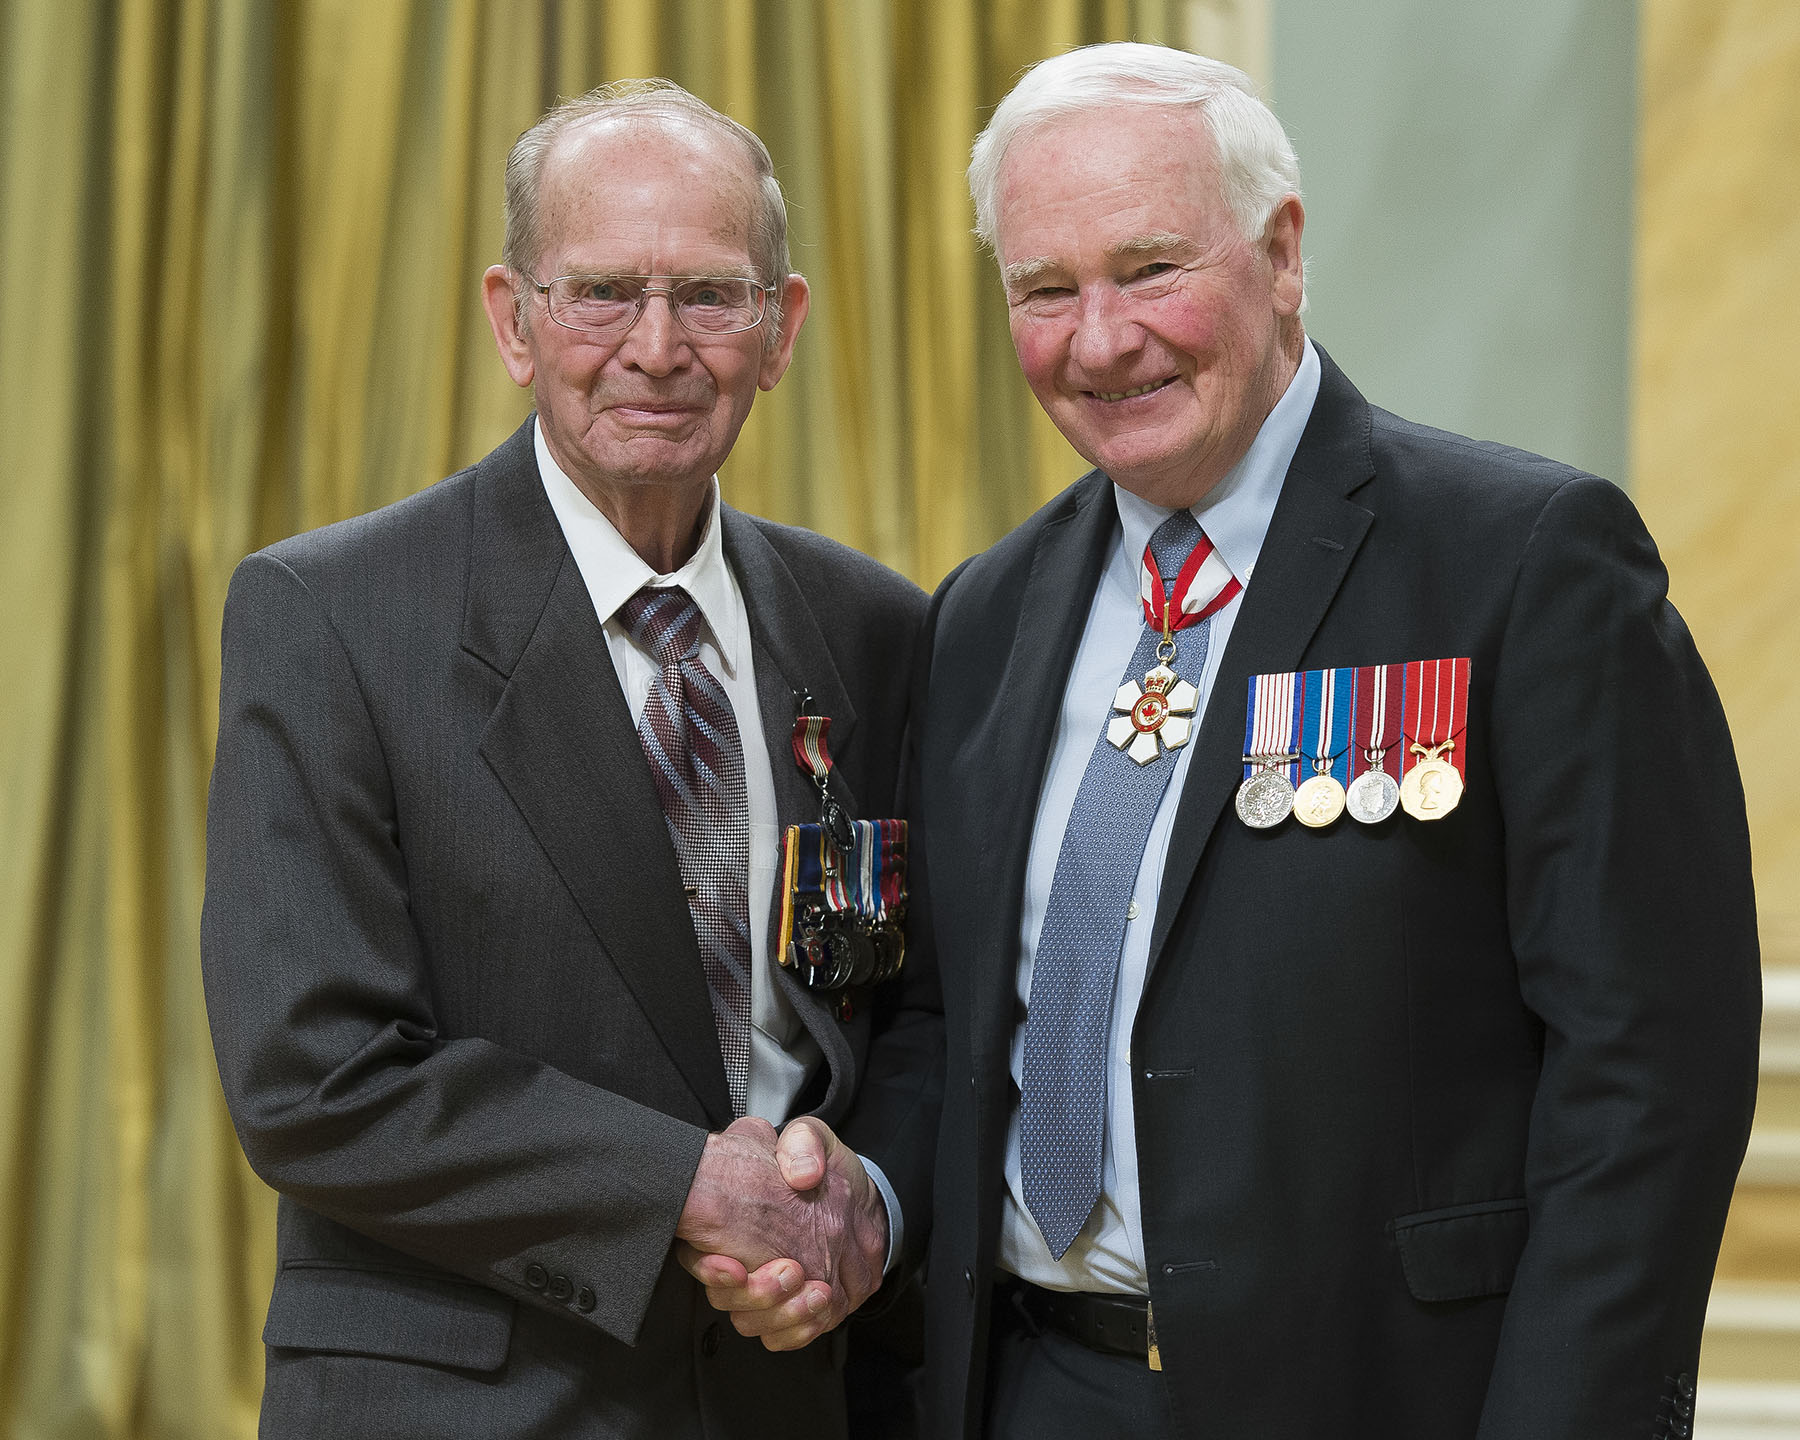 Harvey Shevalier has been an energetic volunteer in every community he has called home. He has been involved with such organizations as Scouts Canada, the Food Bank and the Legion; additionally, he was a driving force behind the introduction of veterans' licence plates in Alberta, and a key player in having a major highway renamed the Veterans Memorial Highway.